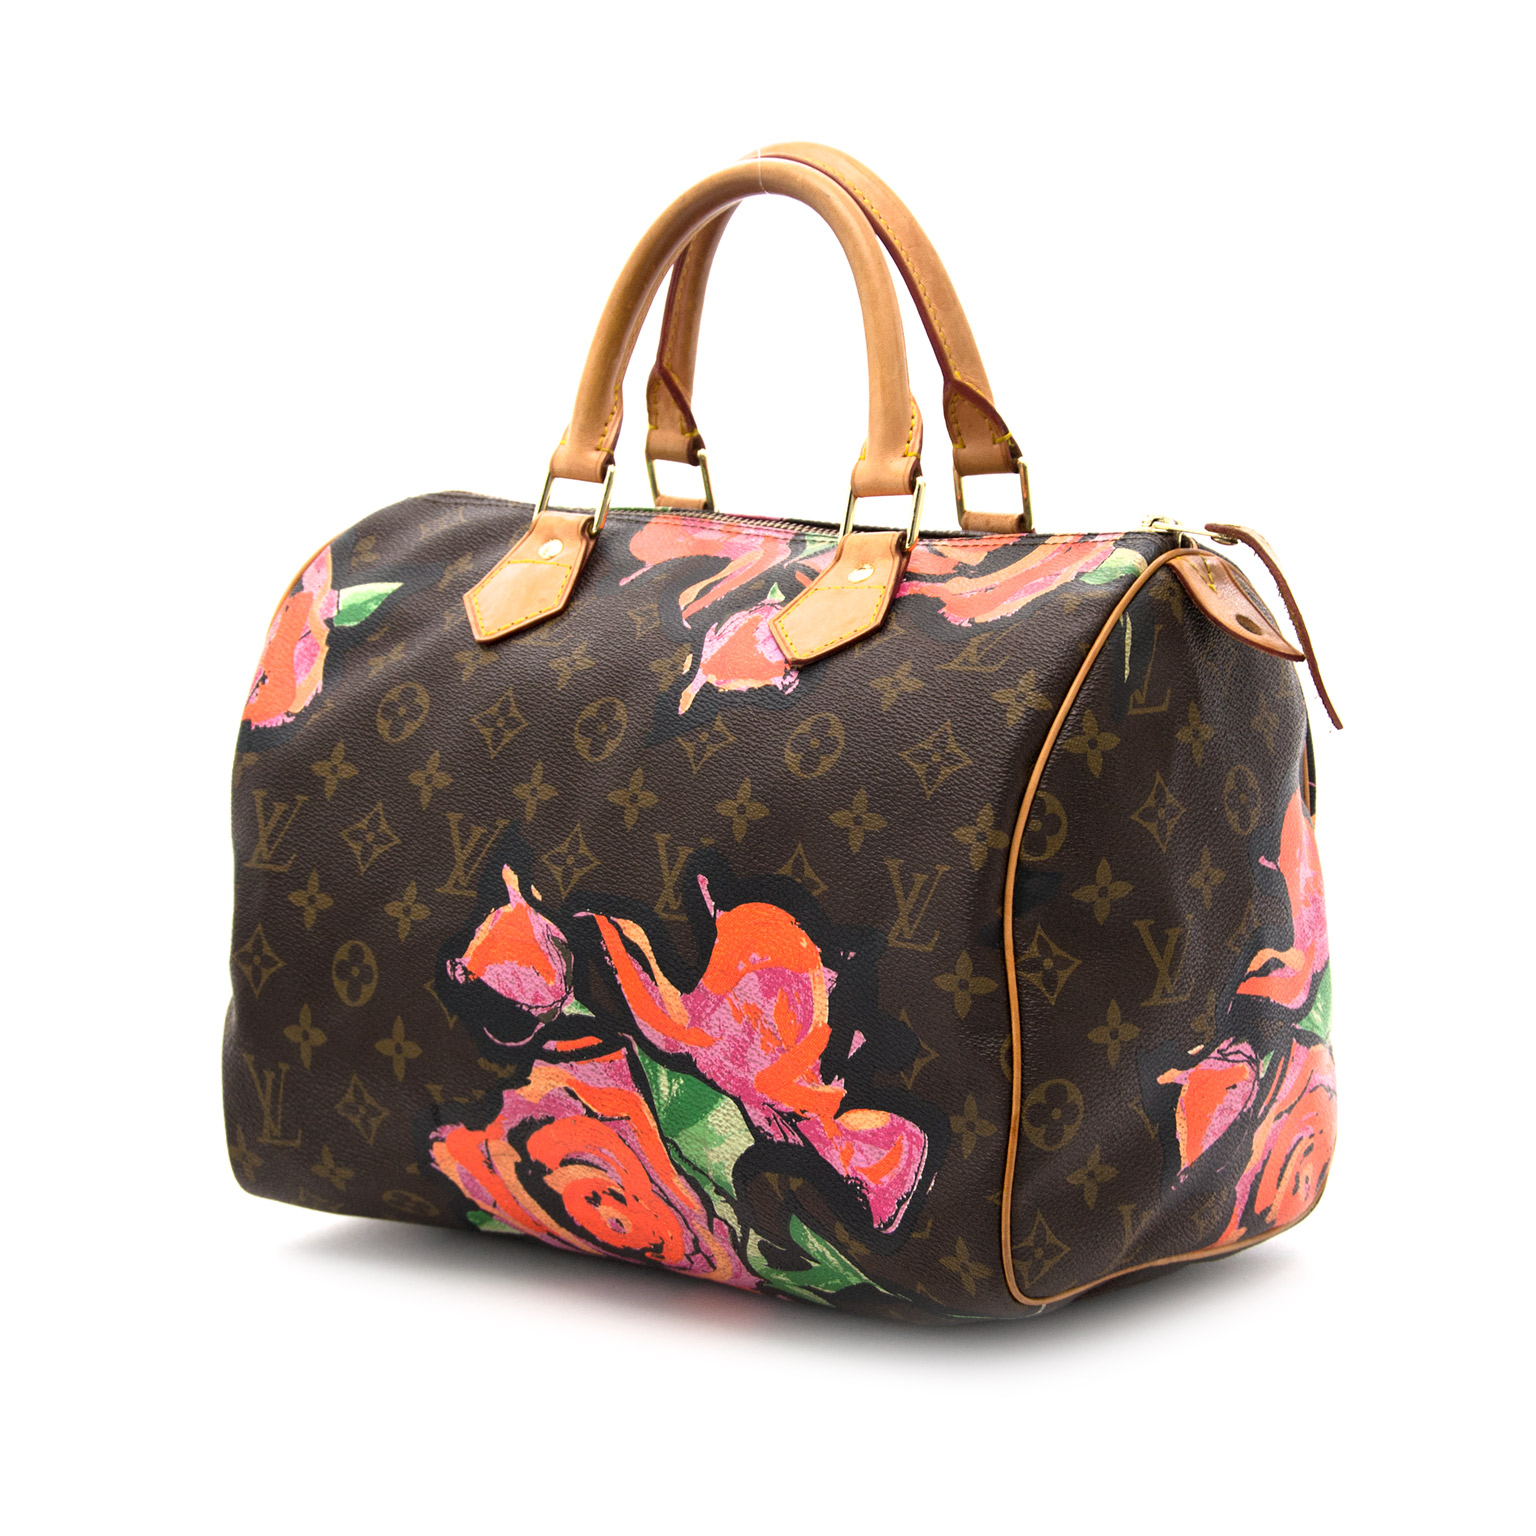 3f8224a05 Luxe, shop safe online your secondhand luxury Louis Vuitton Speedy 30  Limited Edition Roses Bag Brillant Bag